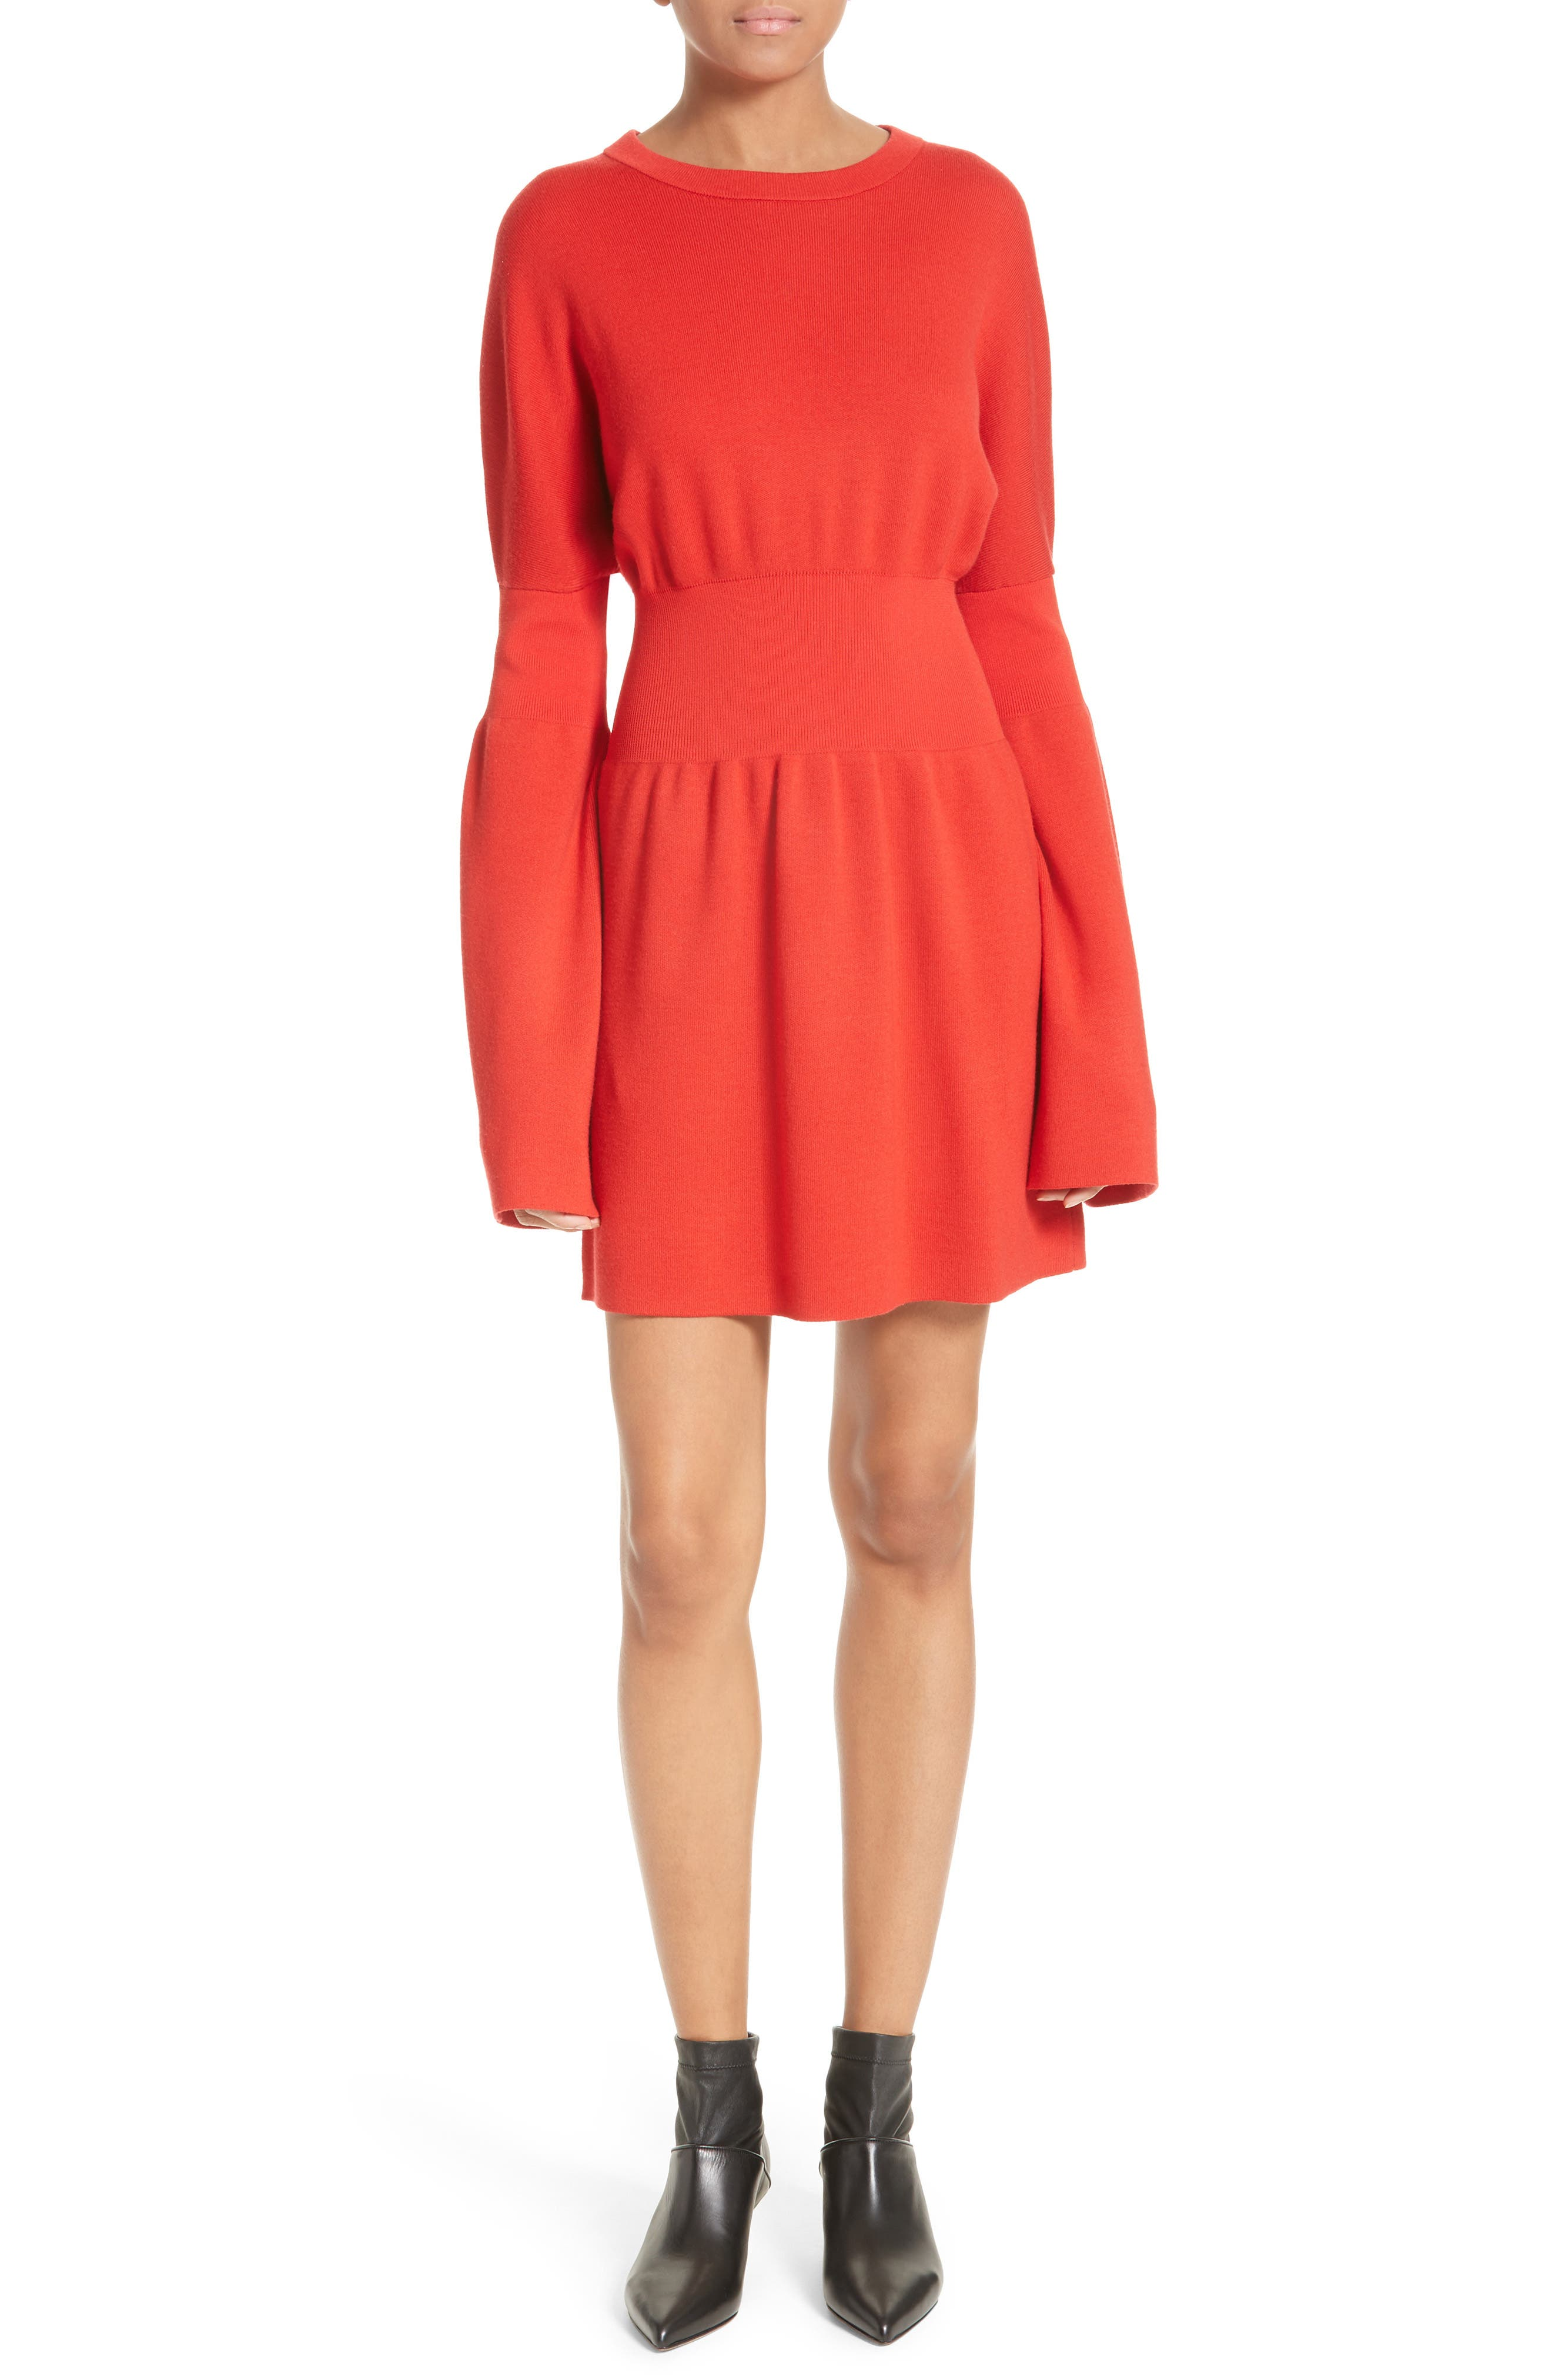 Tibi Merino Wool Knit Minidress